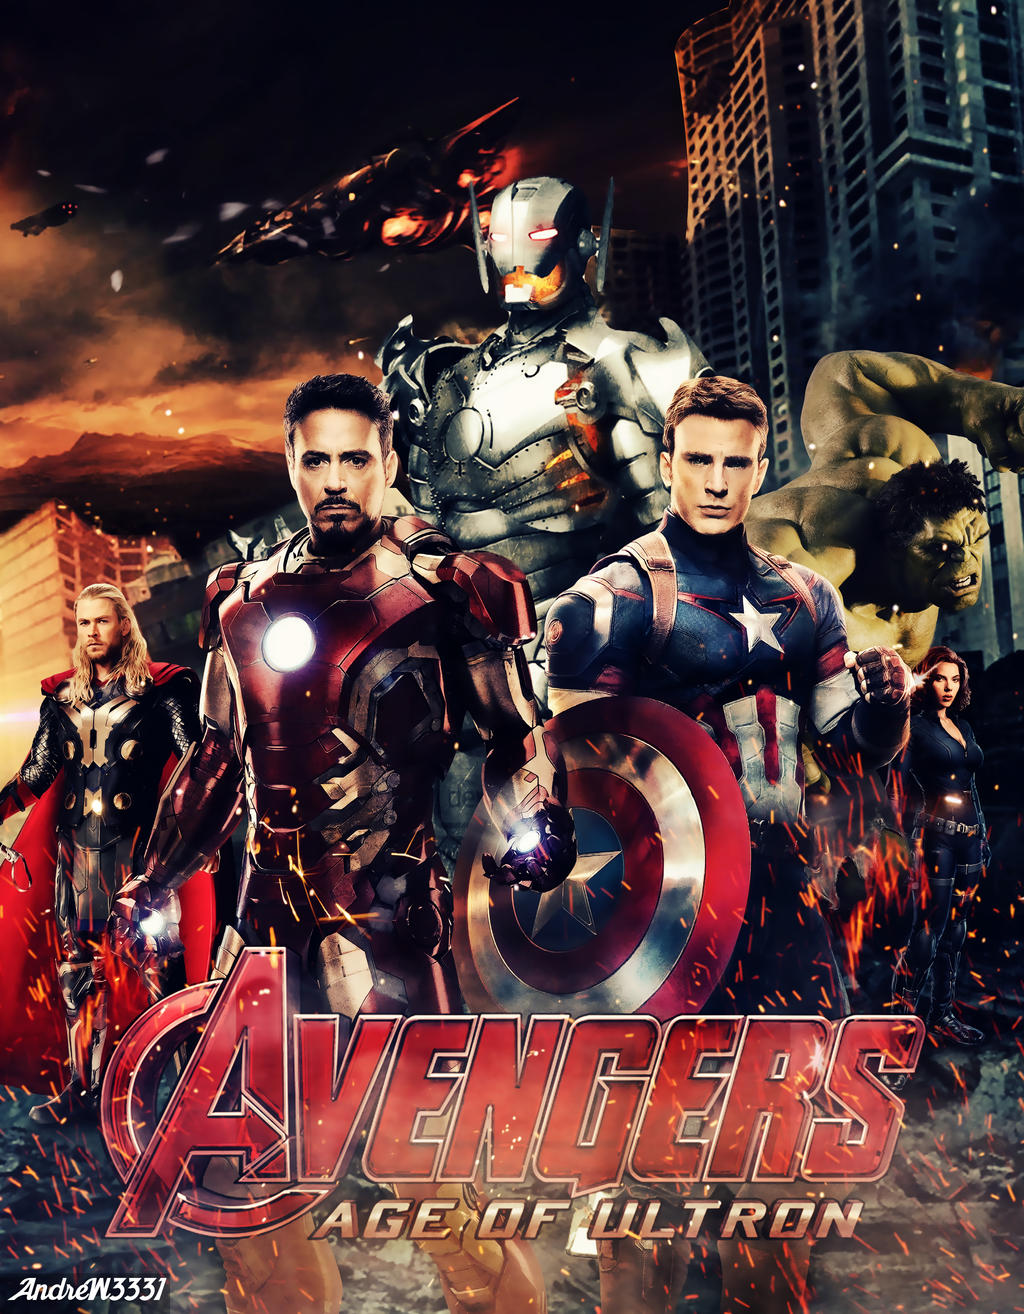 Avengers Age Of Ultron By Iloegbunam On Deviantart: The Avengers: Age Of Ultron By Fabioandre18 On DeviantArt